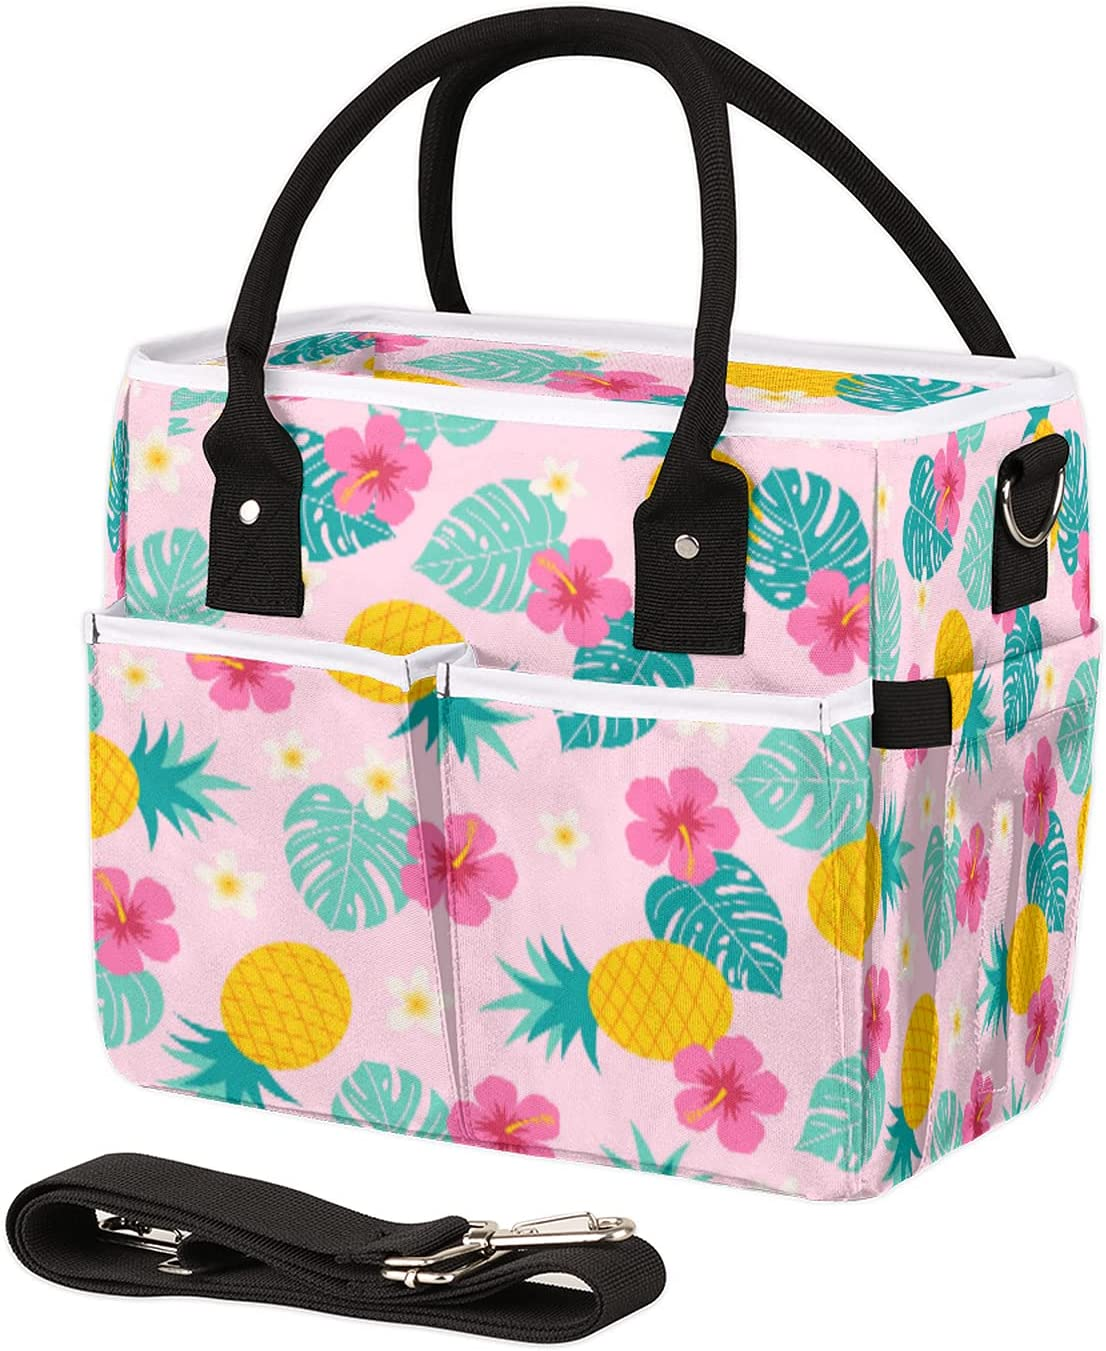 Insulated Lunch Bag for Women Special price for a limited time Men Oakland Mall Pineapple Palm Reusable L Leaf